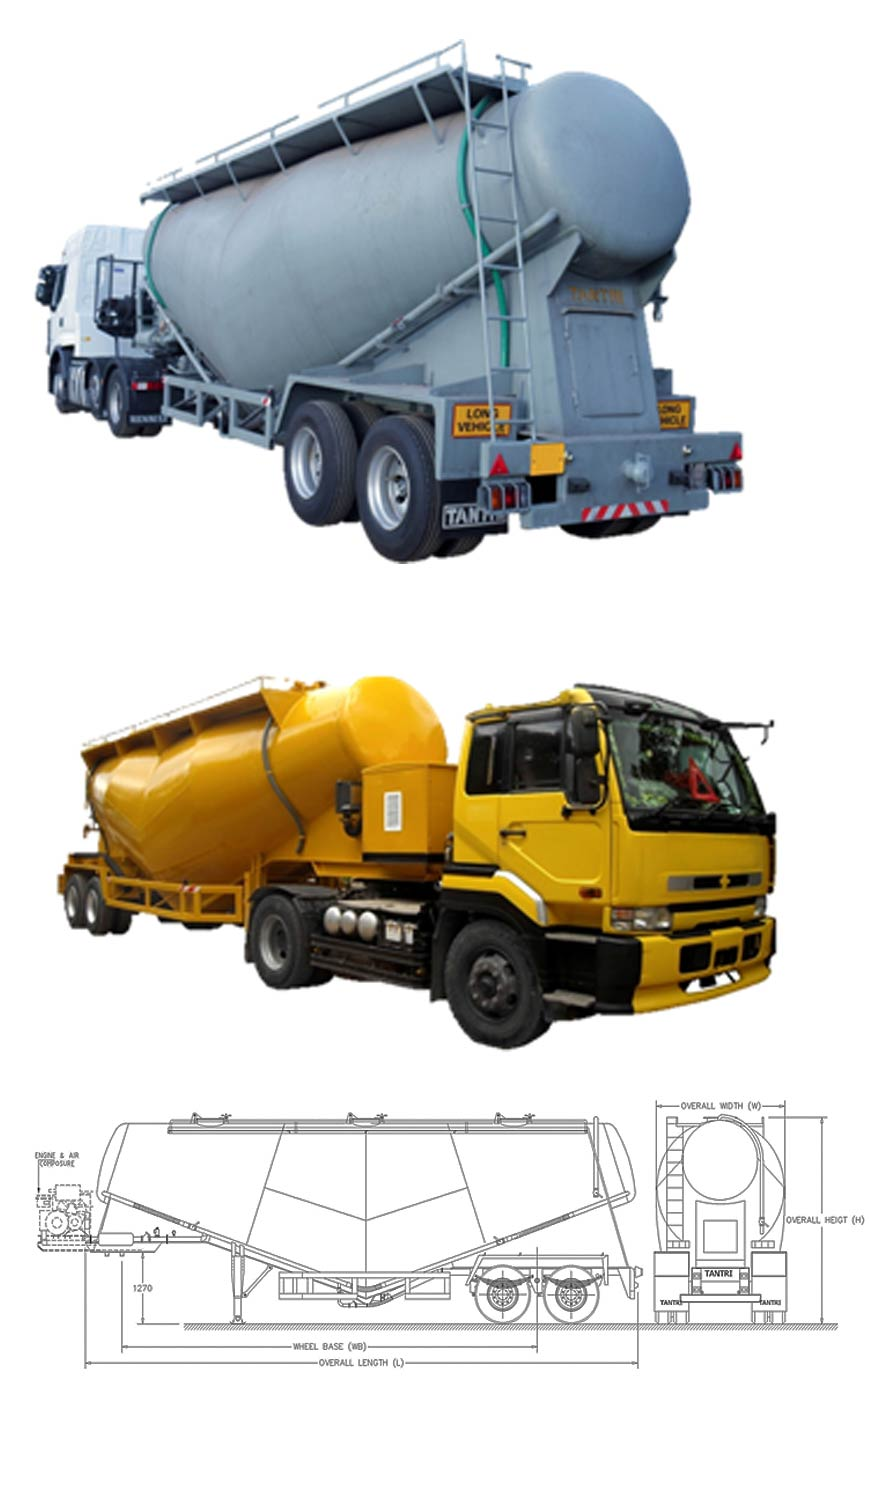 Fur: length of different types of trailer